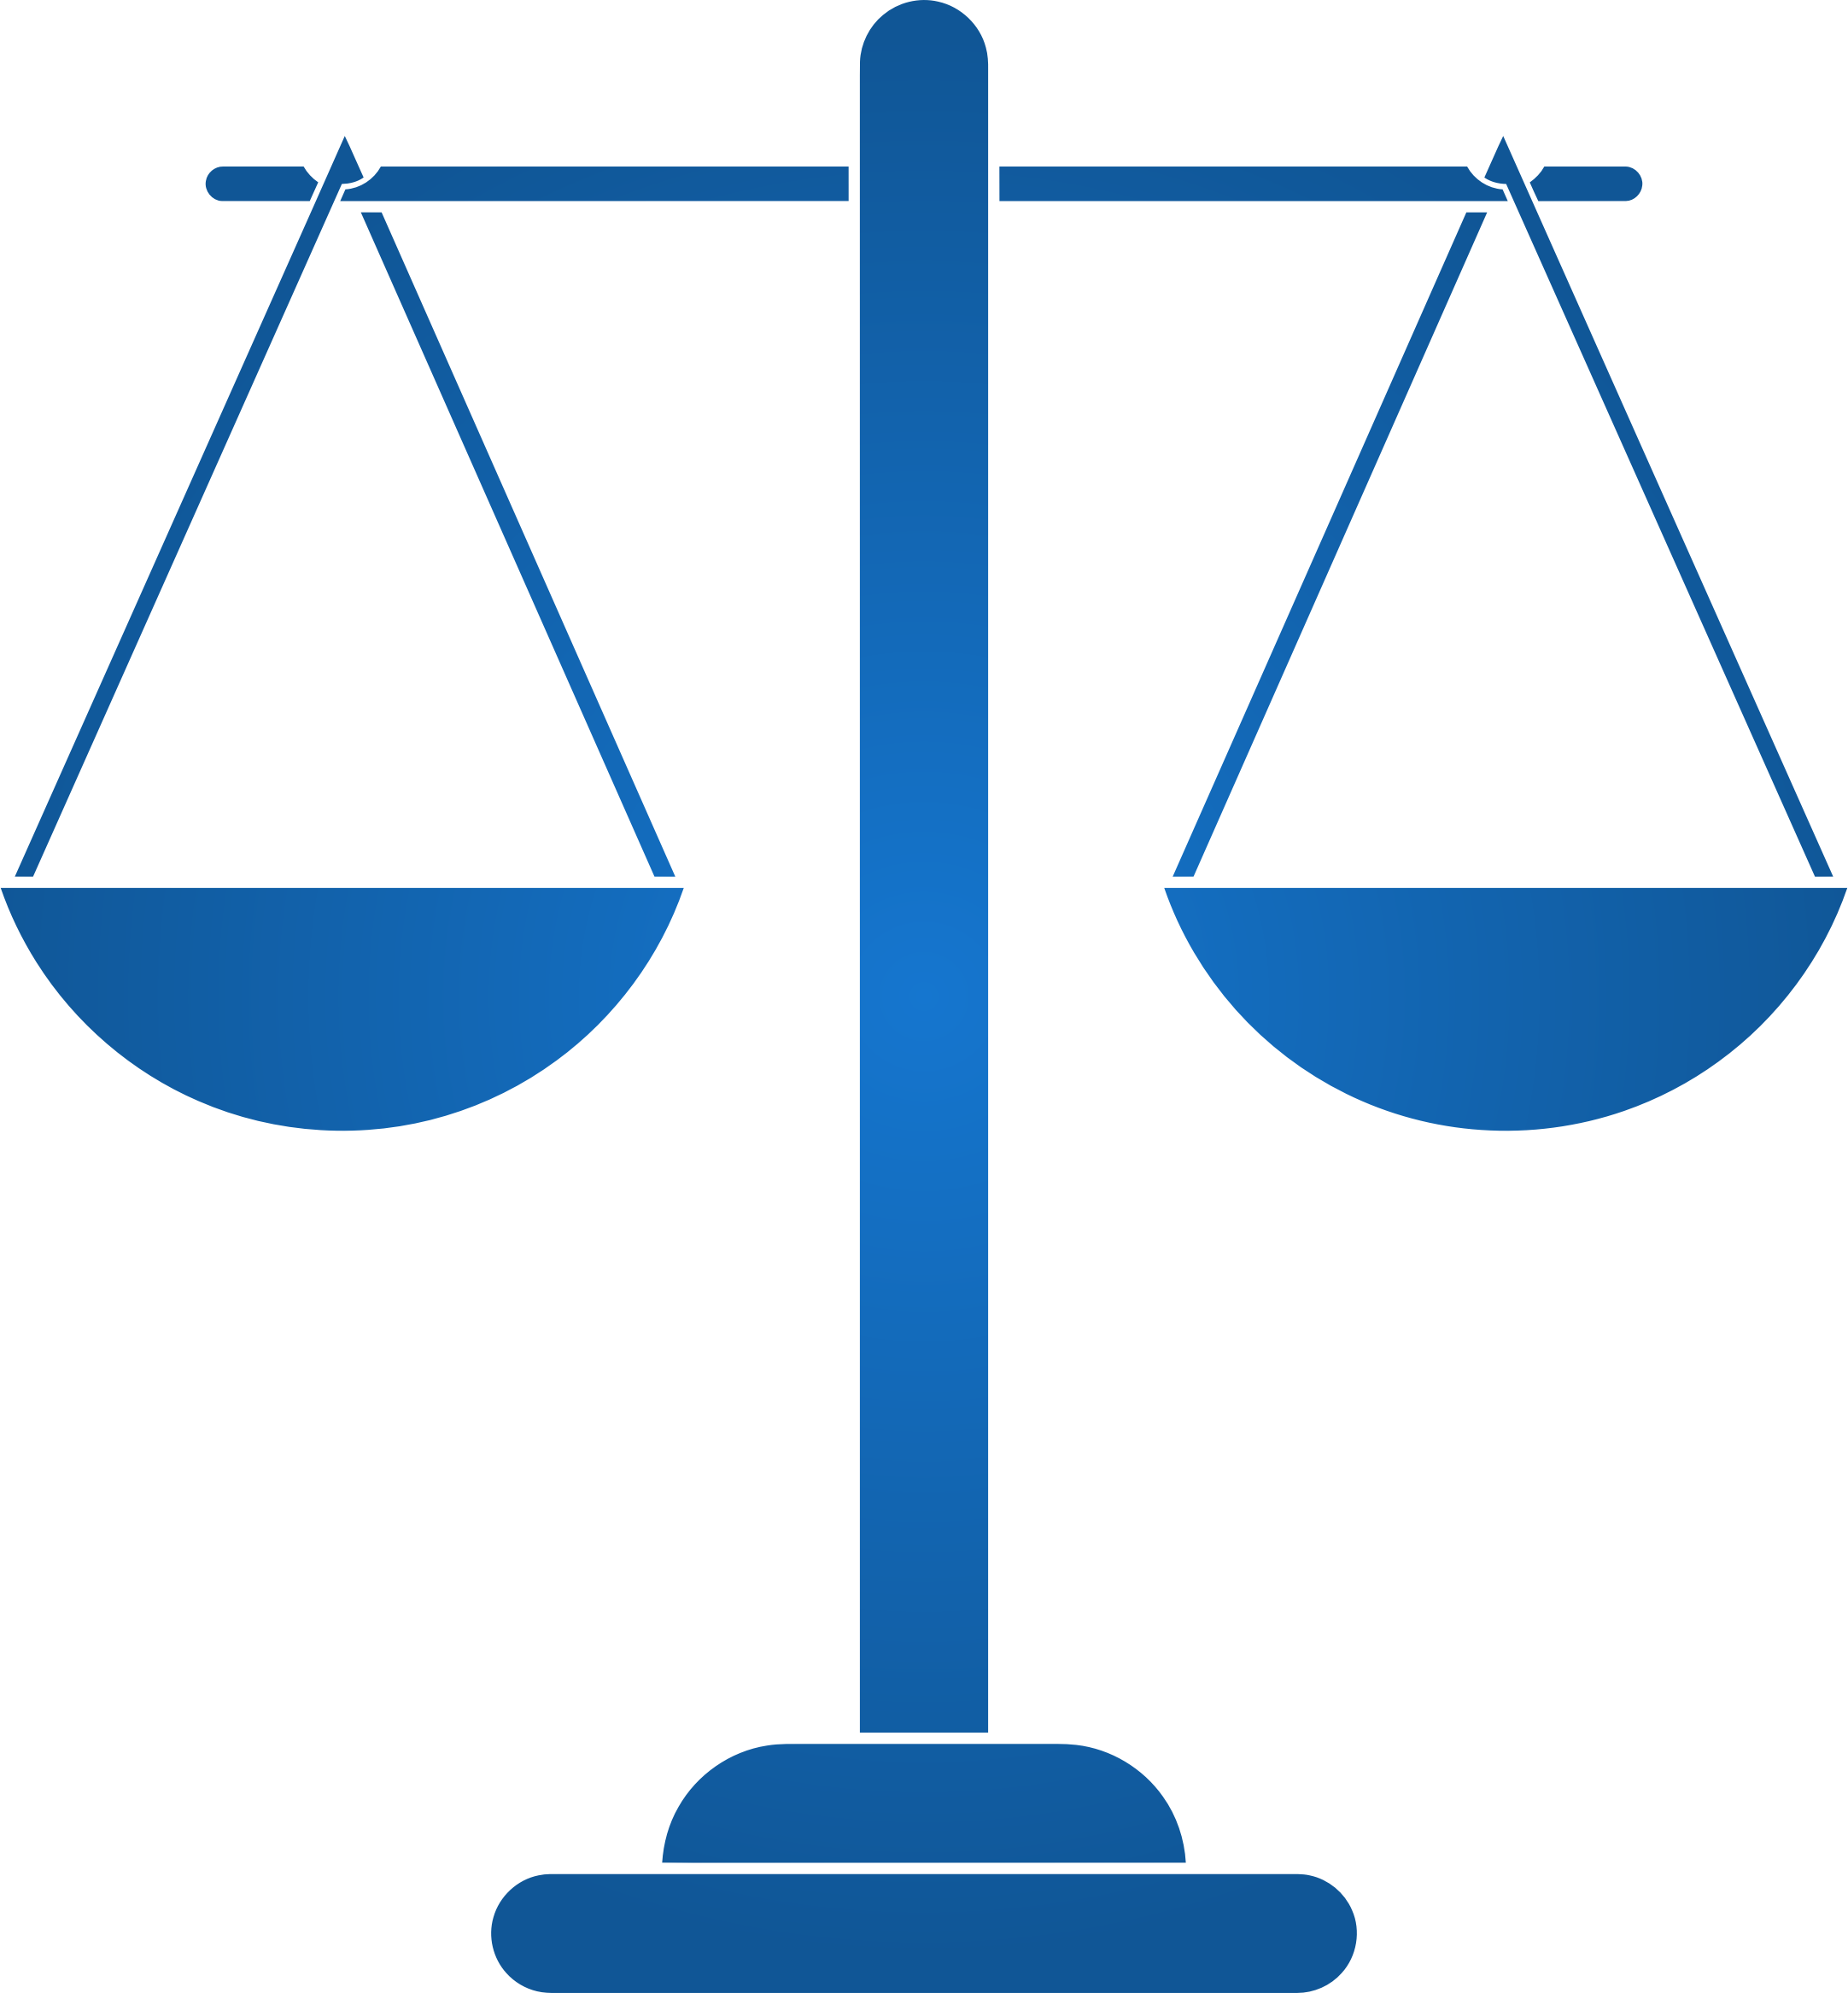 Justice clipart scales justice. Sun lilly remix big